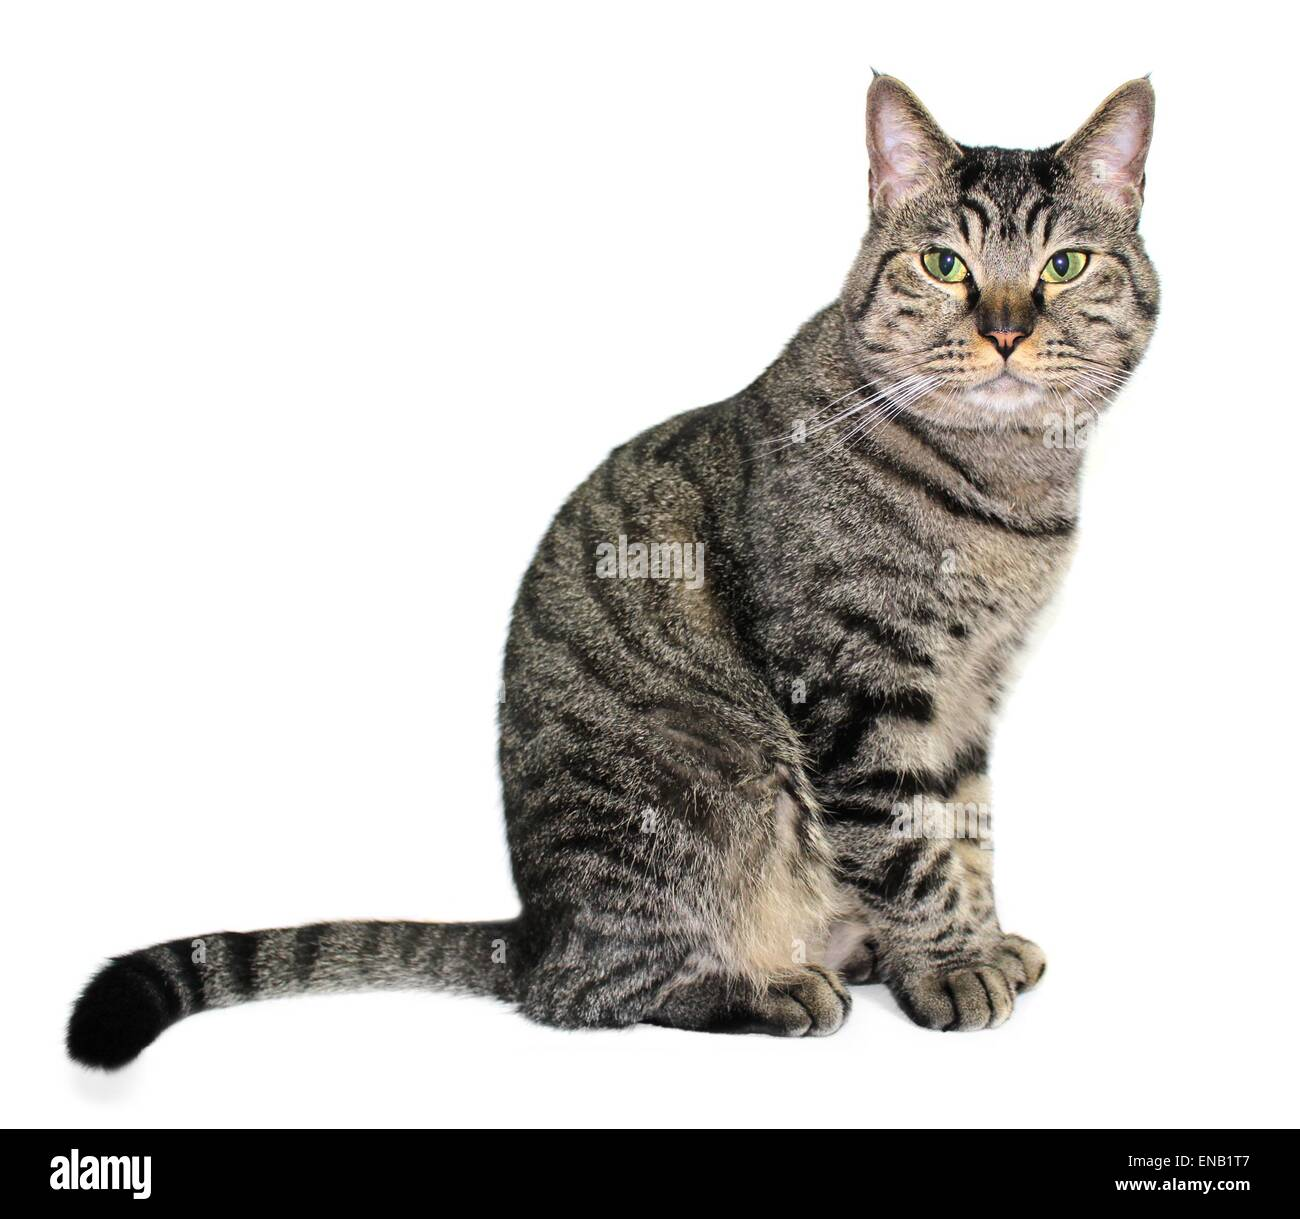 Tabby cat sitting on white background - Stock Image